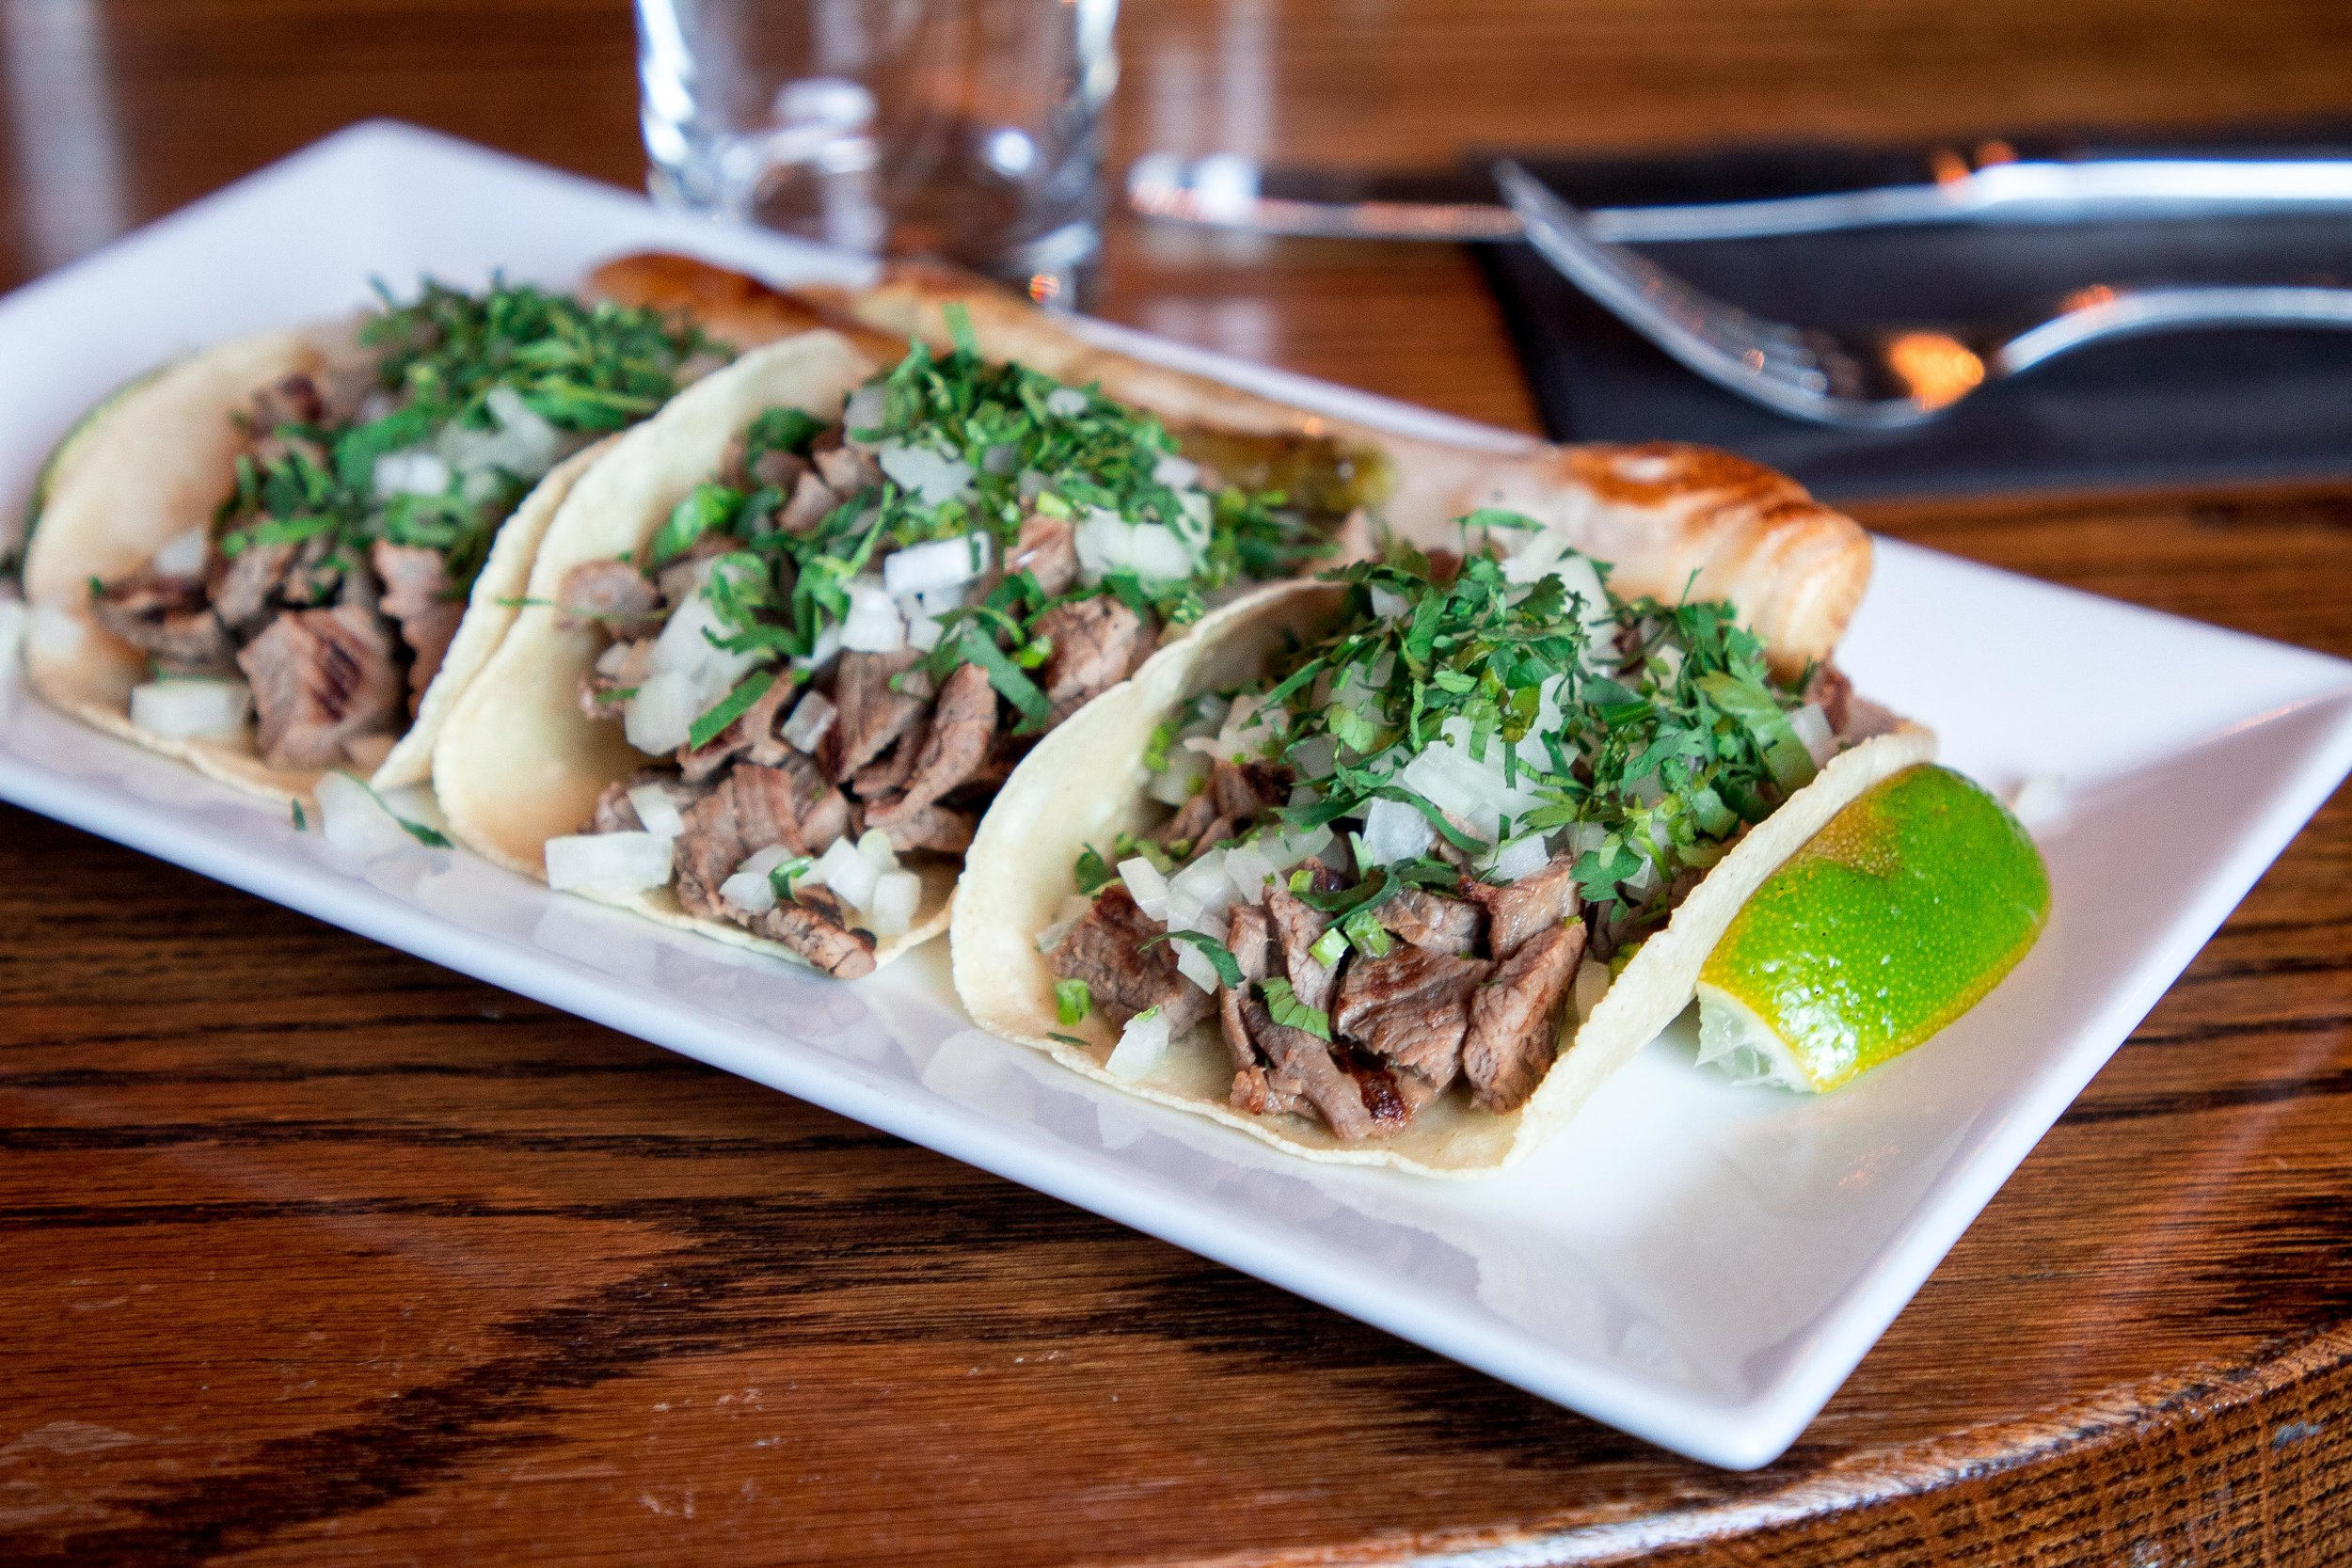 steak-tacos-2019 copy.jpg